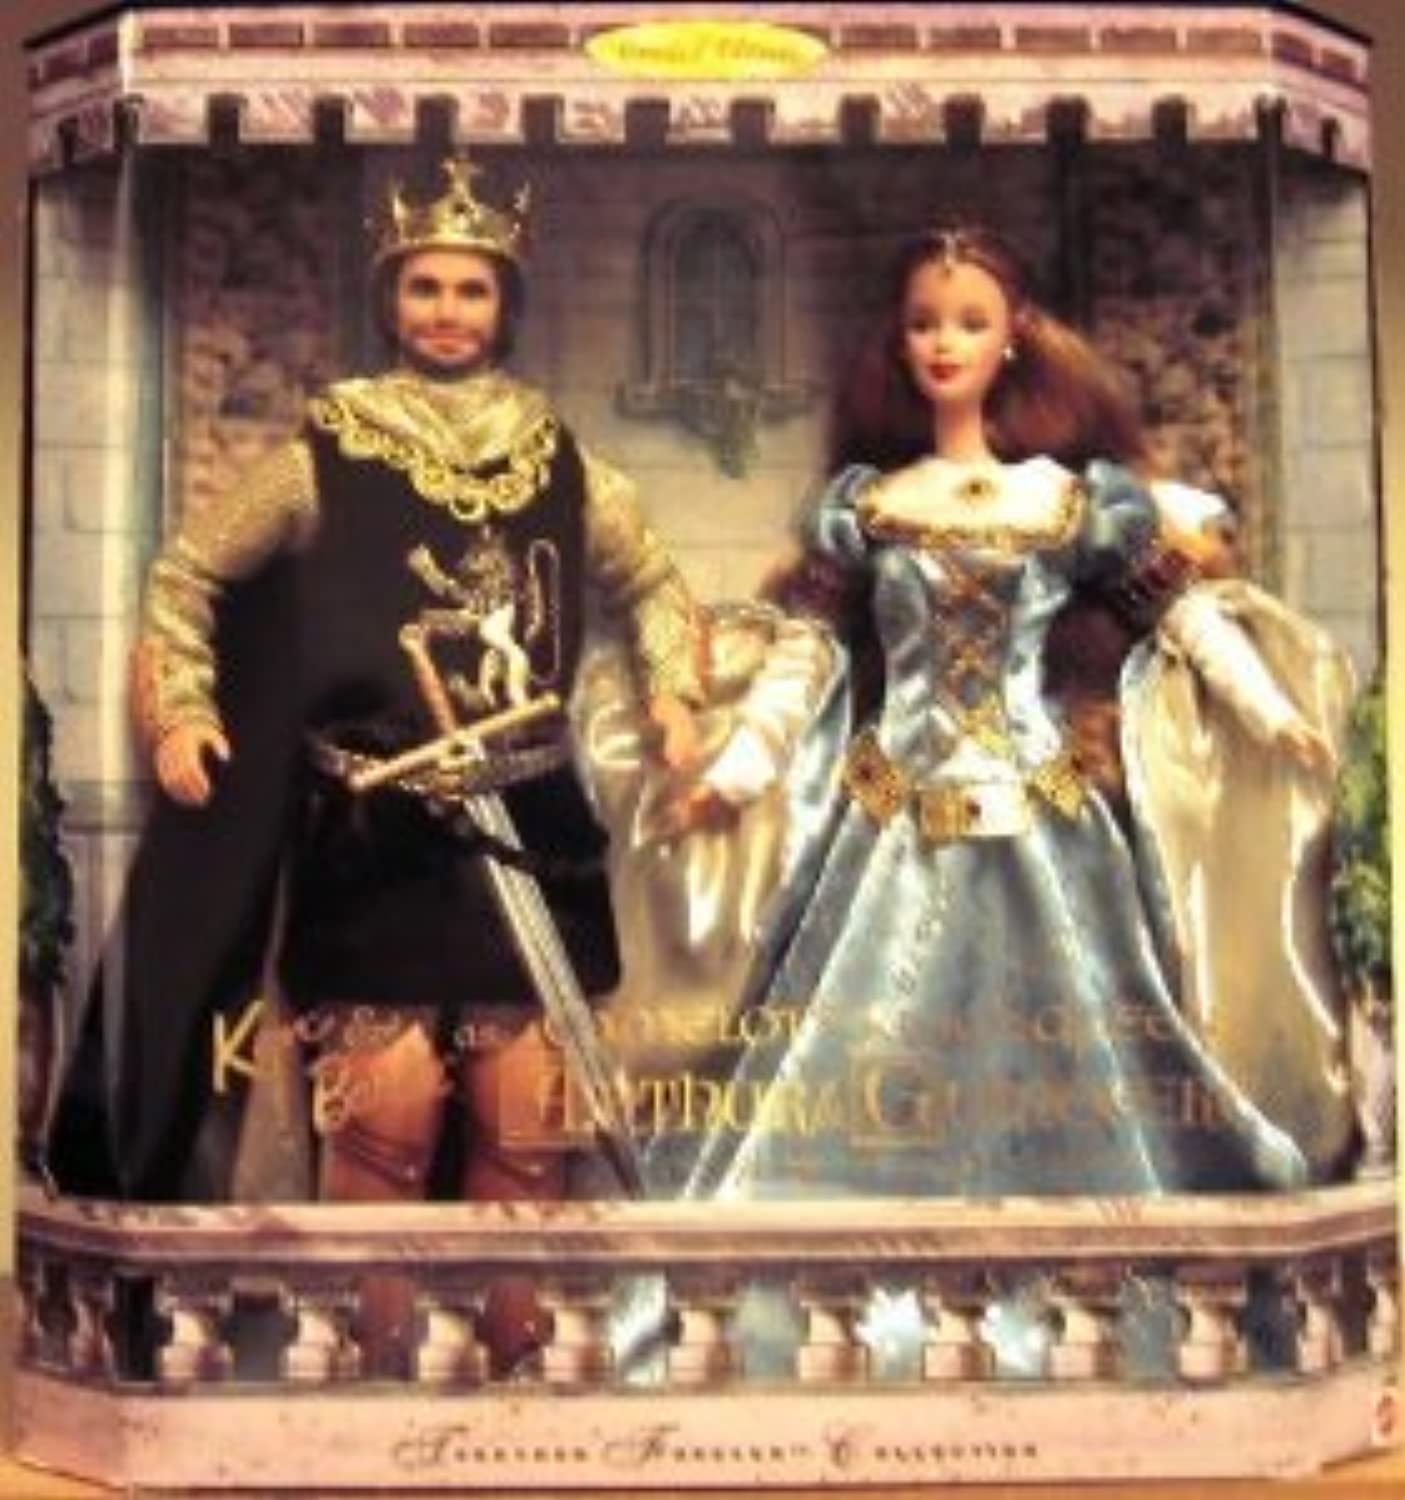 Ken and Barbie(バービー) Doll As Camelot's King & Queen, Arthur and Guinevere ドール 人形 フィギュア(並行輸入)